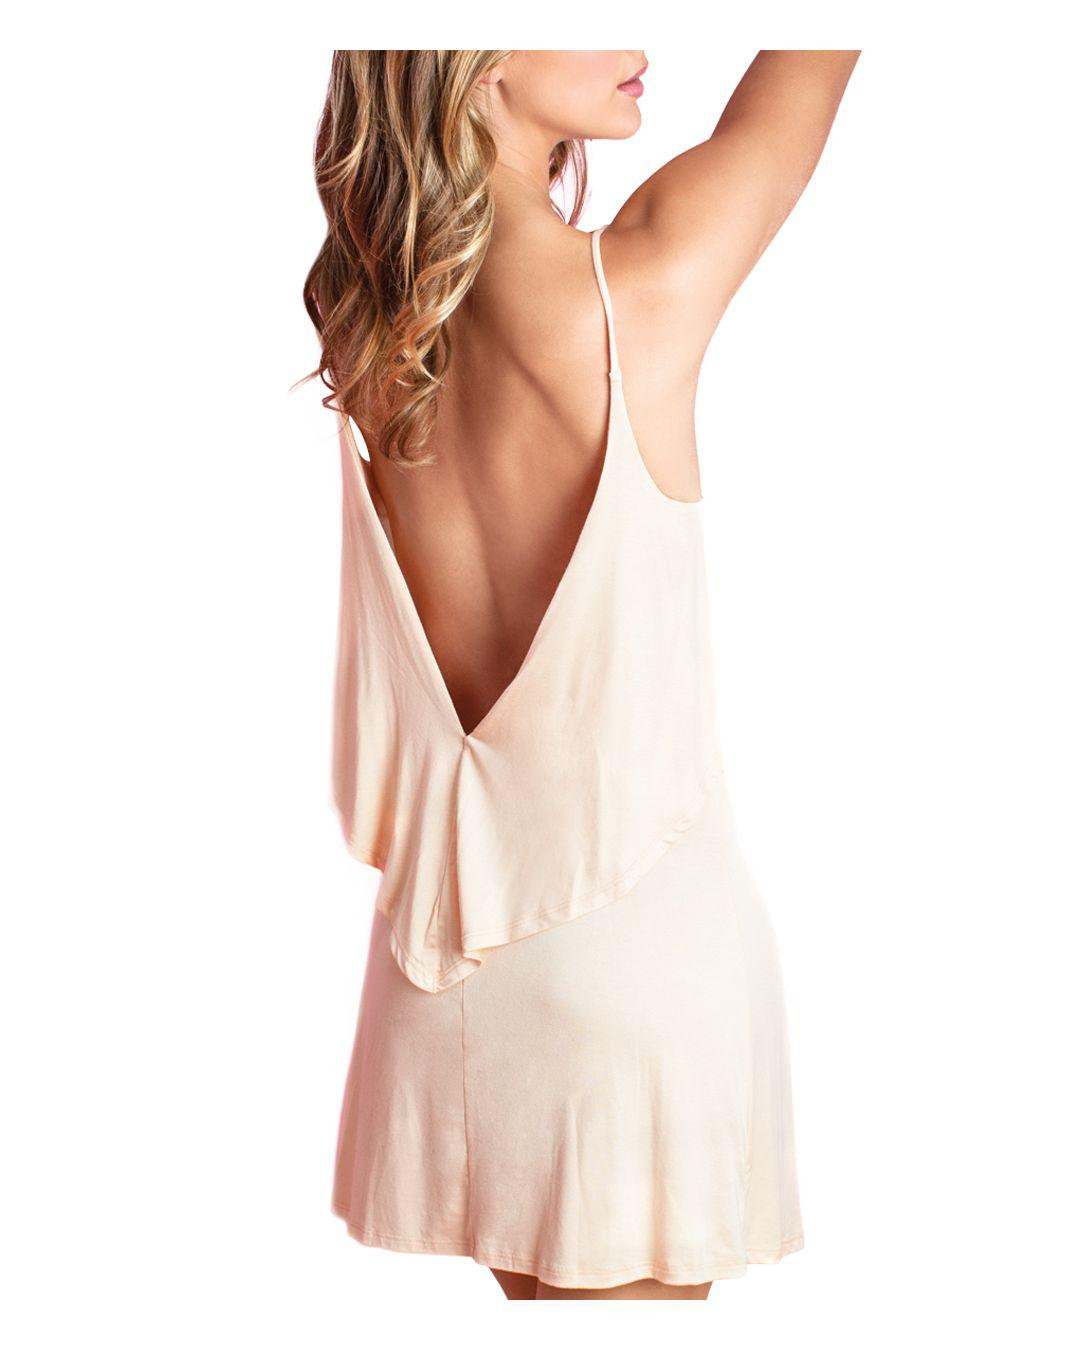 96cb61b29e Fashion Forms U Plunge Backless Strapless Bodysuit in Natural - Lyst